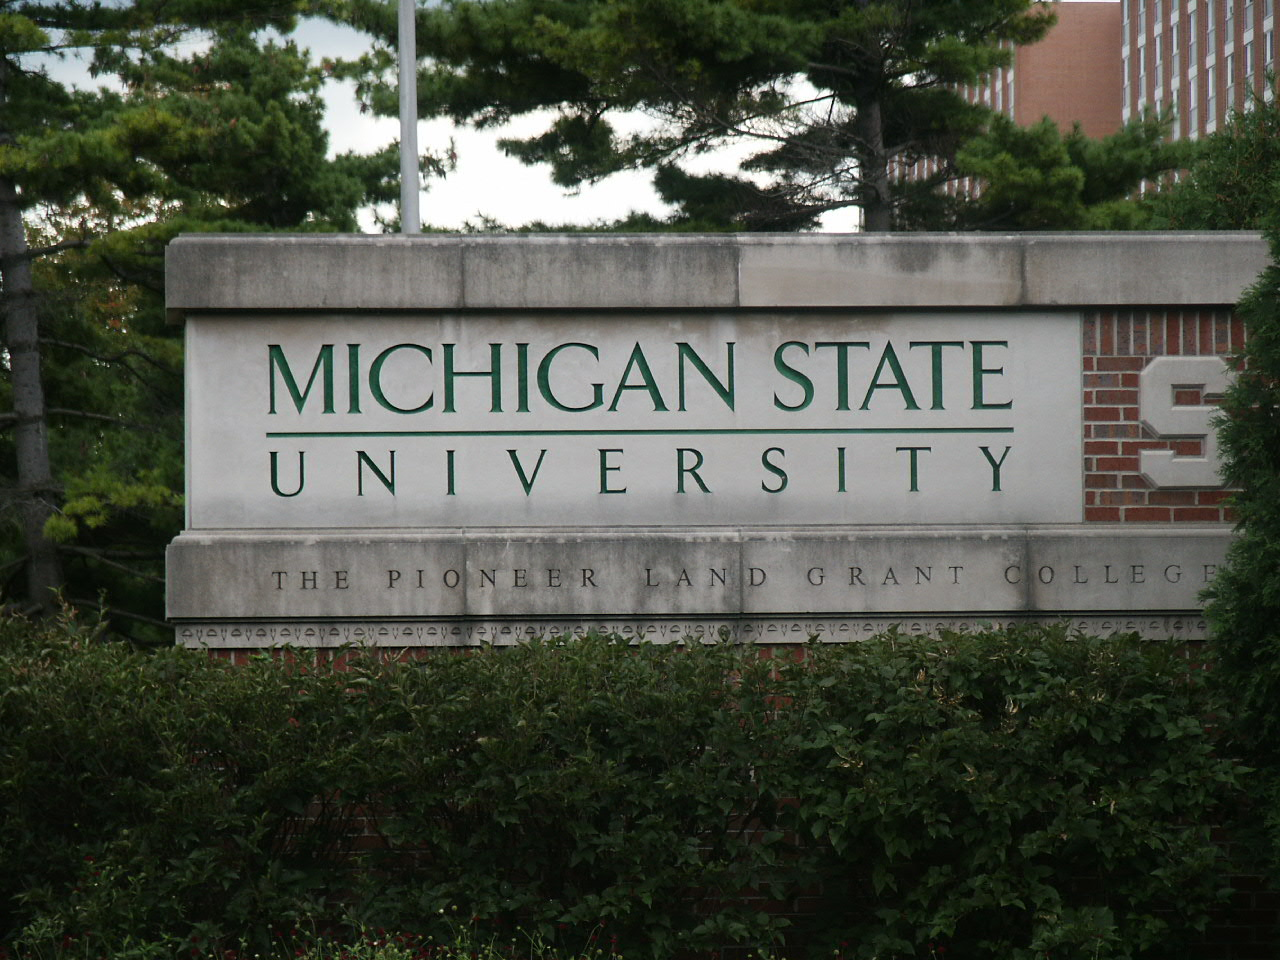 I currently work at Michigan State University. Go Green!